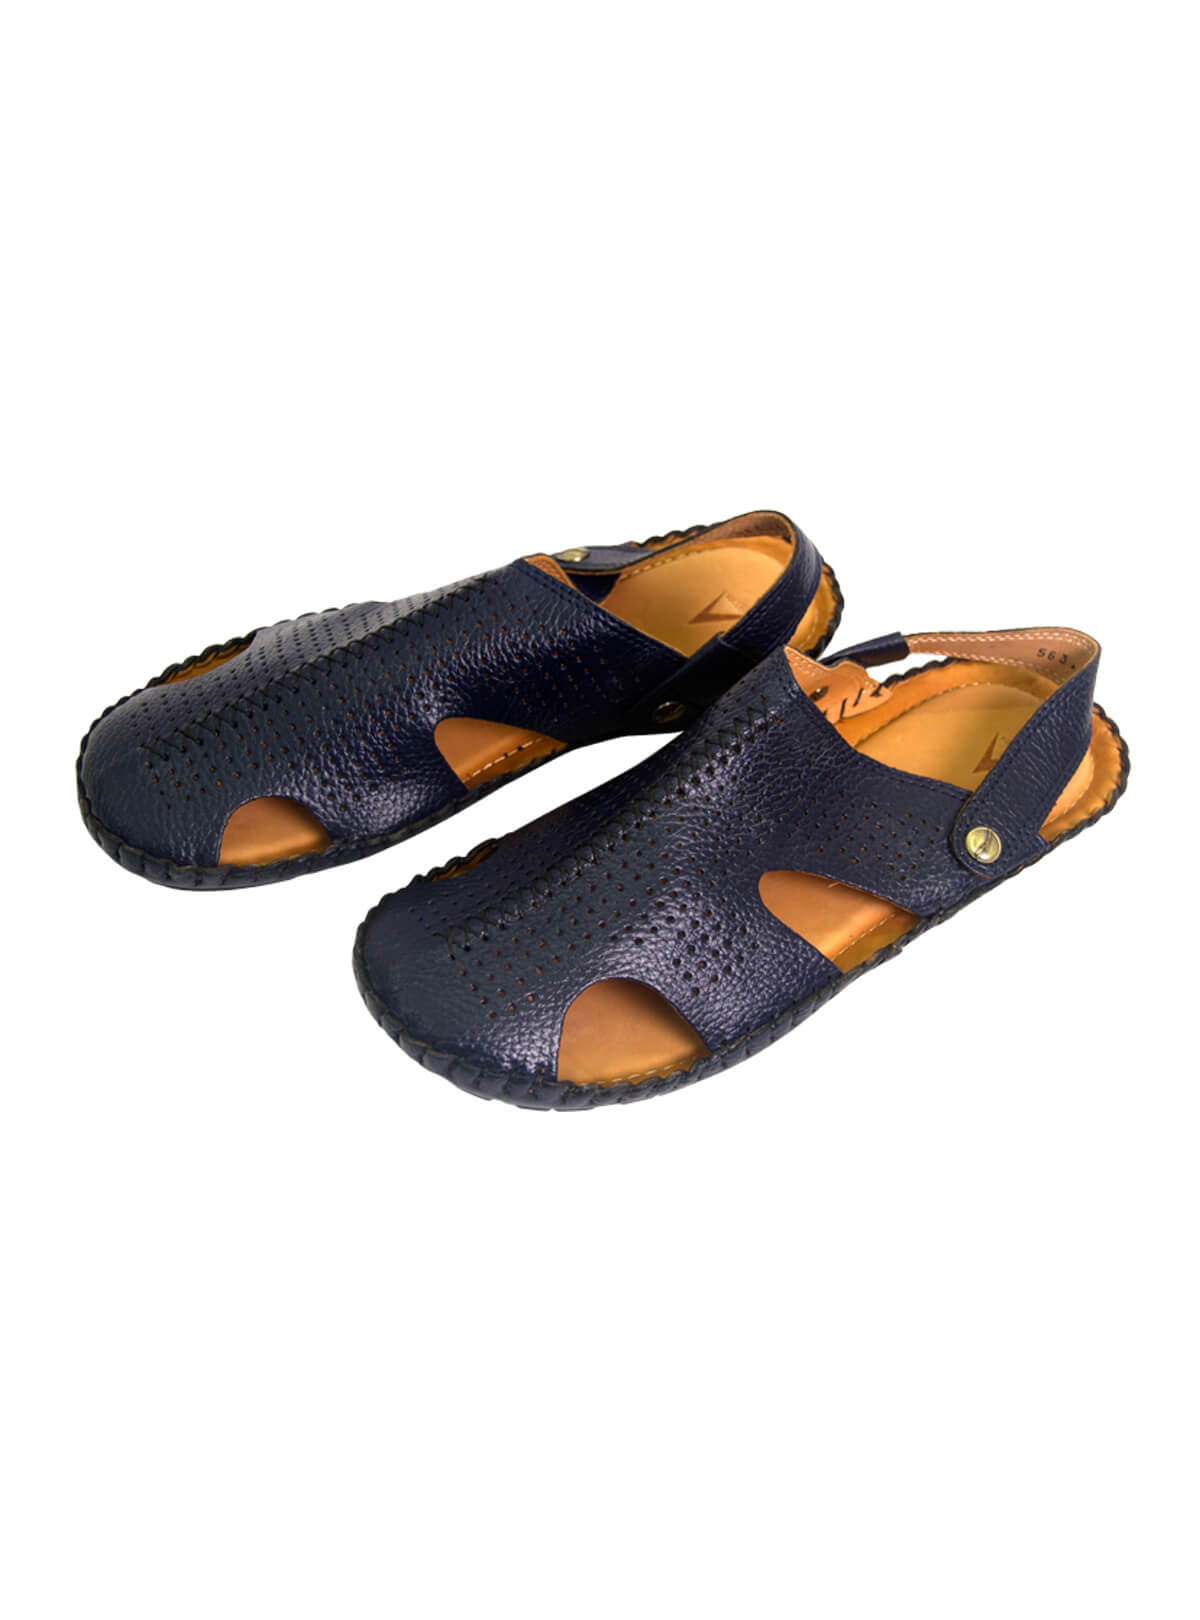 Blue Zodiac Gent's Leather Sandal